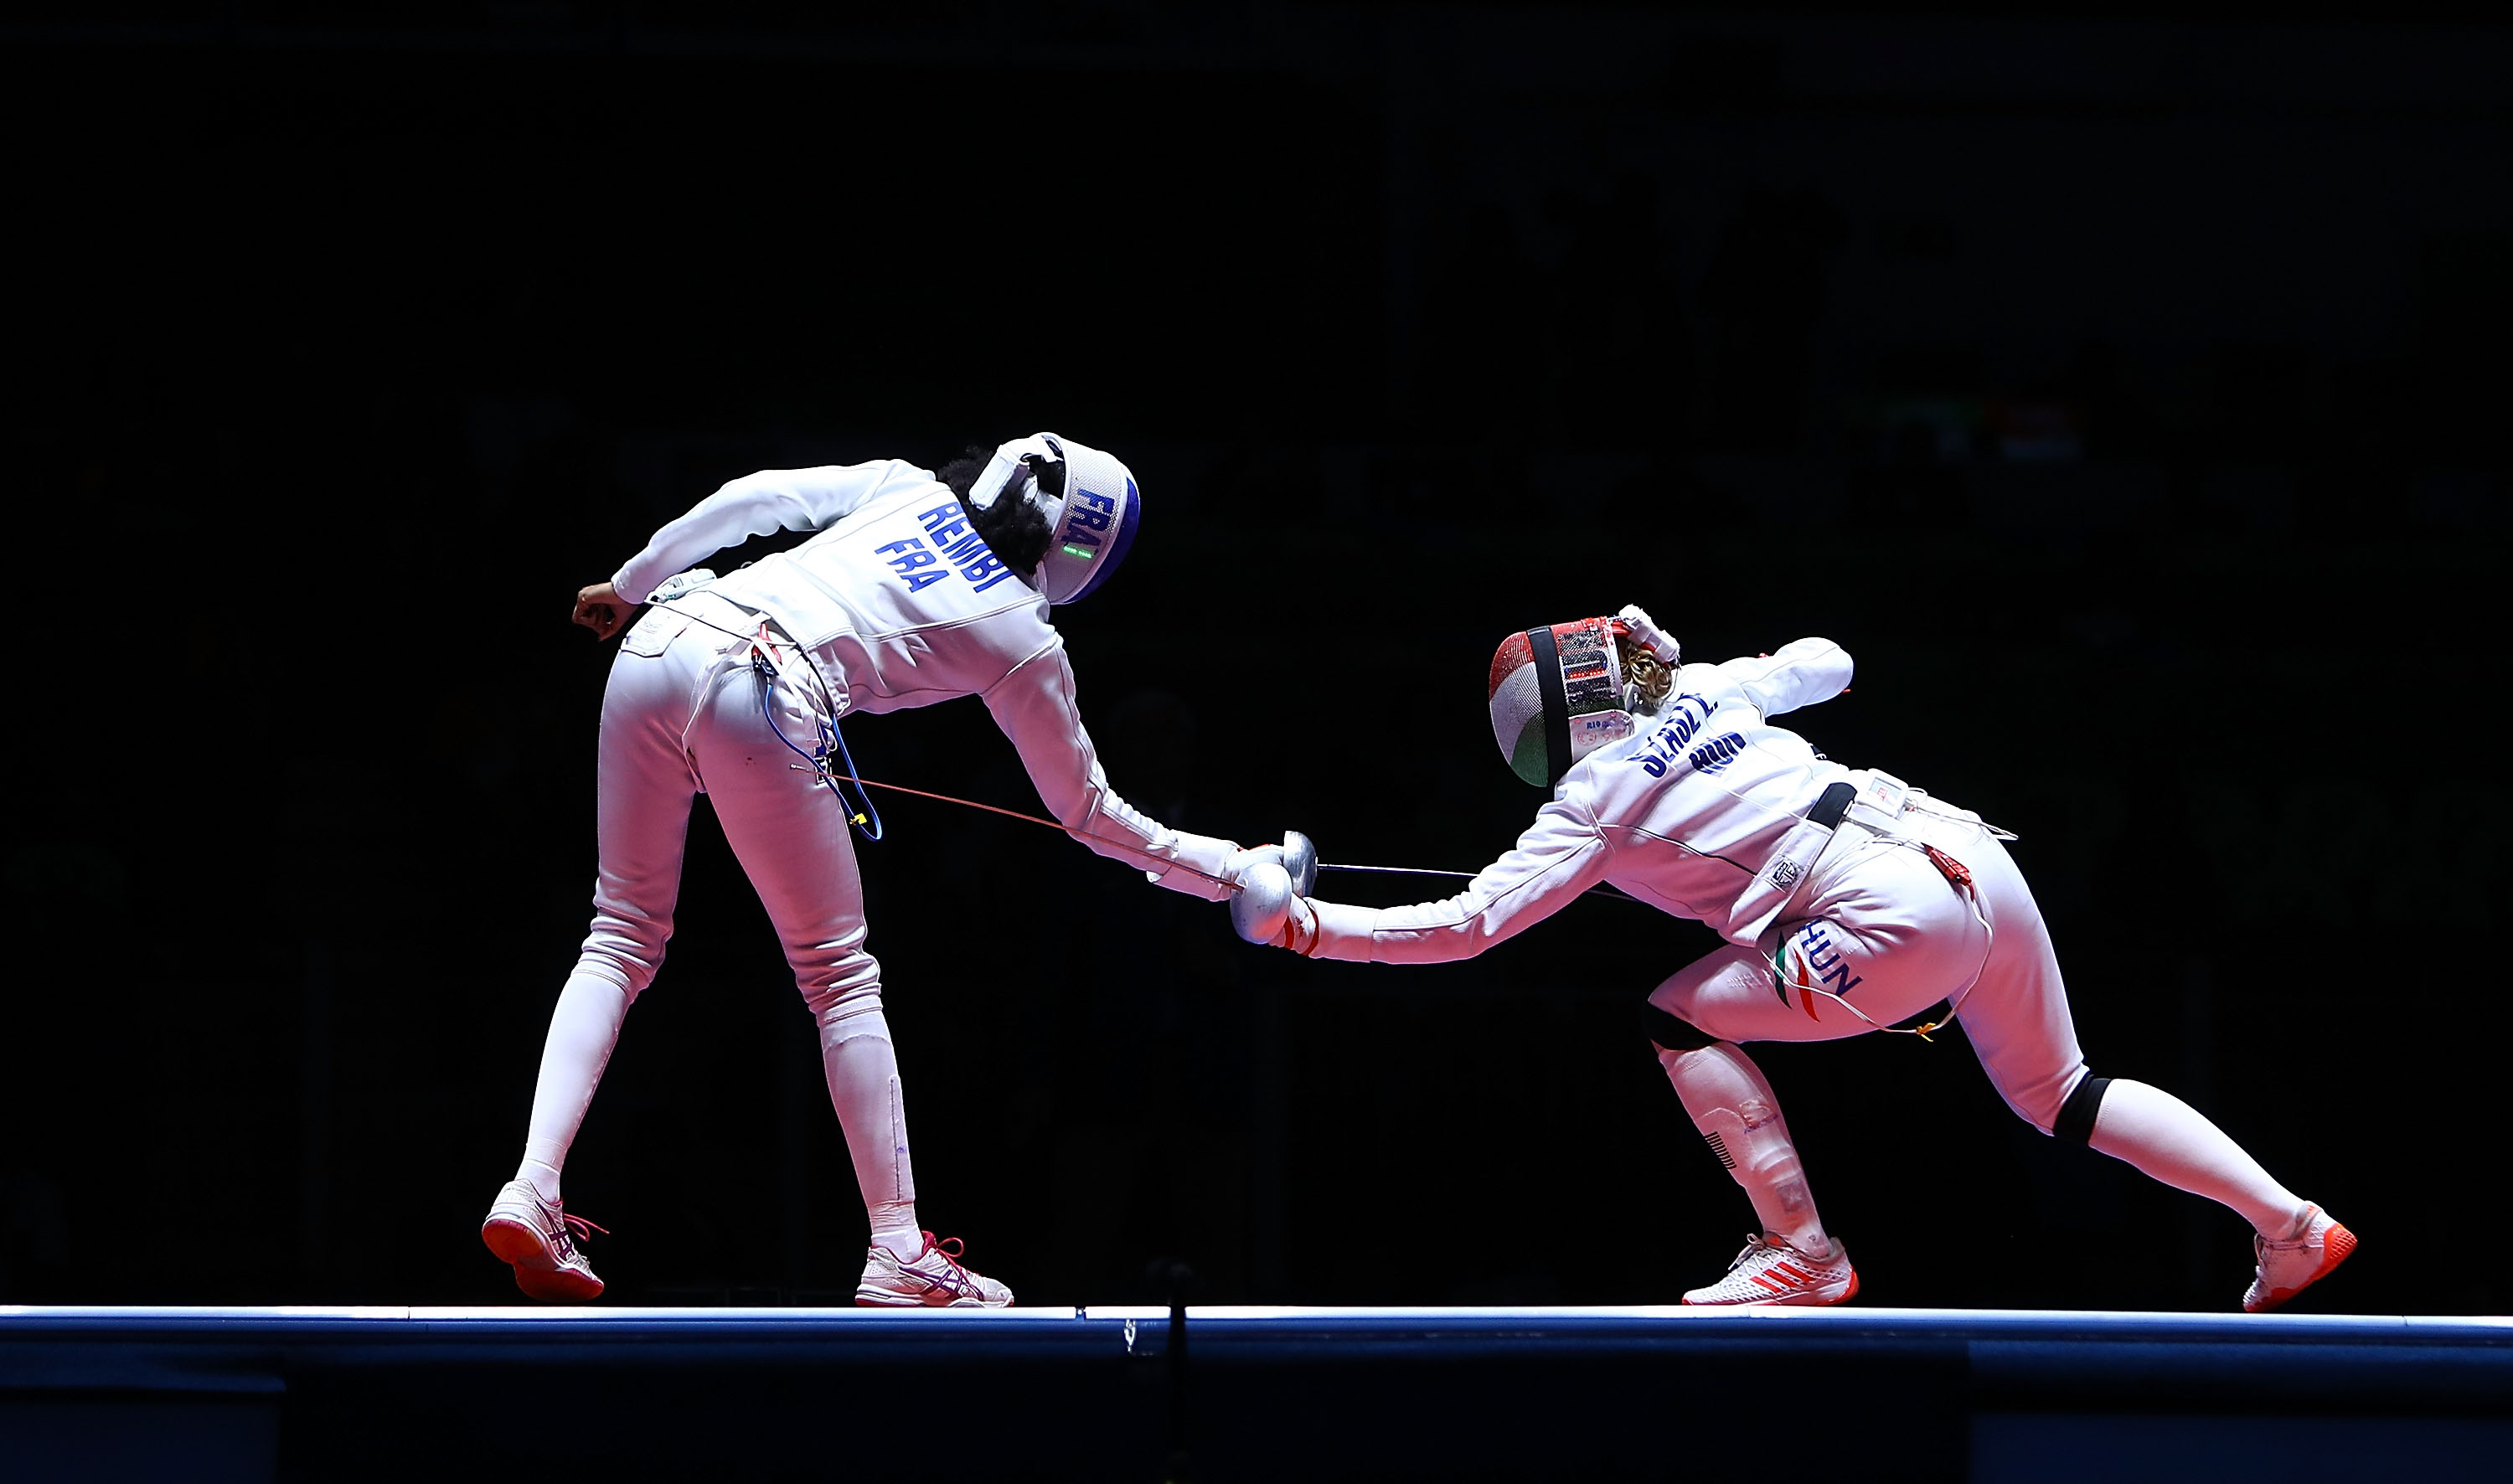 Olympics fencing 2016 live stream watch online august 8th